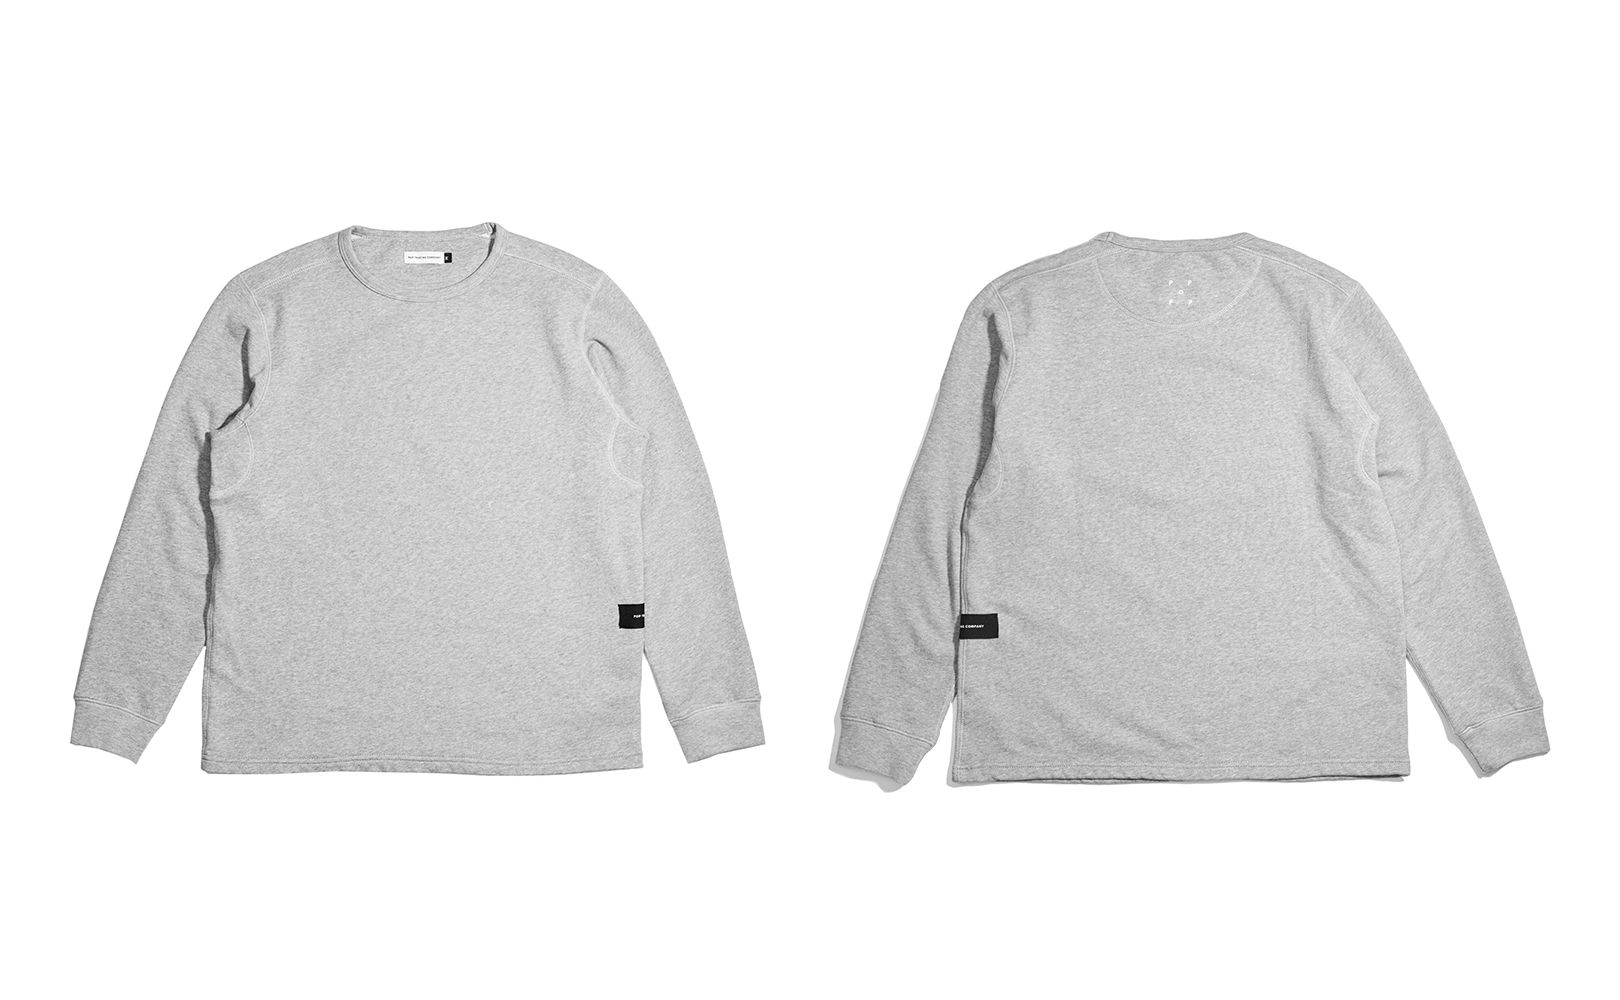 pop-trading-company-aw17-product-8-heavyweight-longsleeve-grey